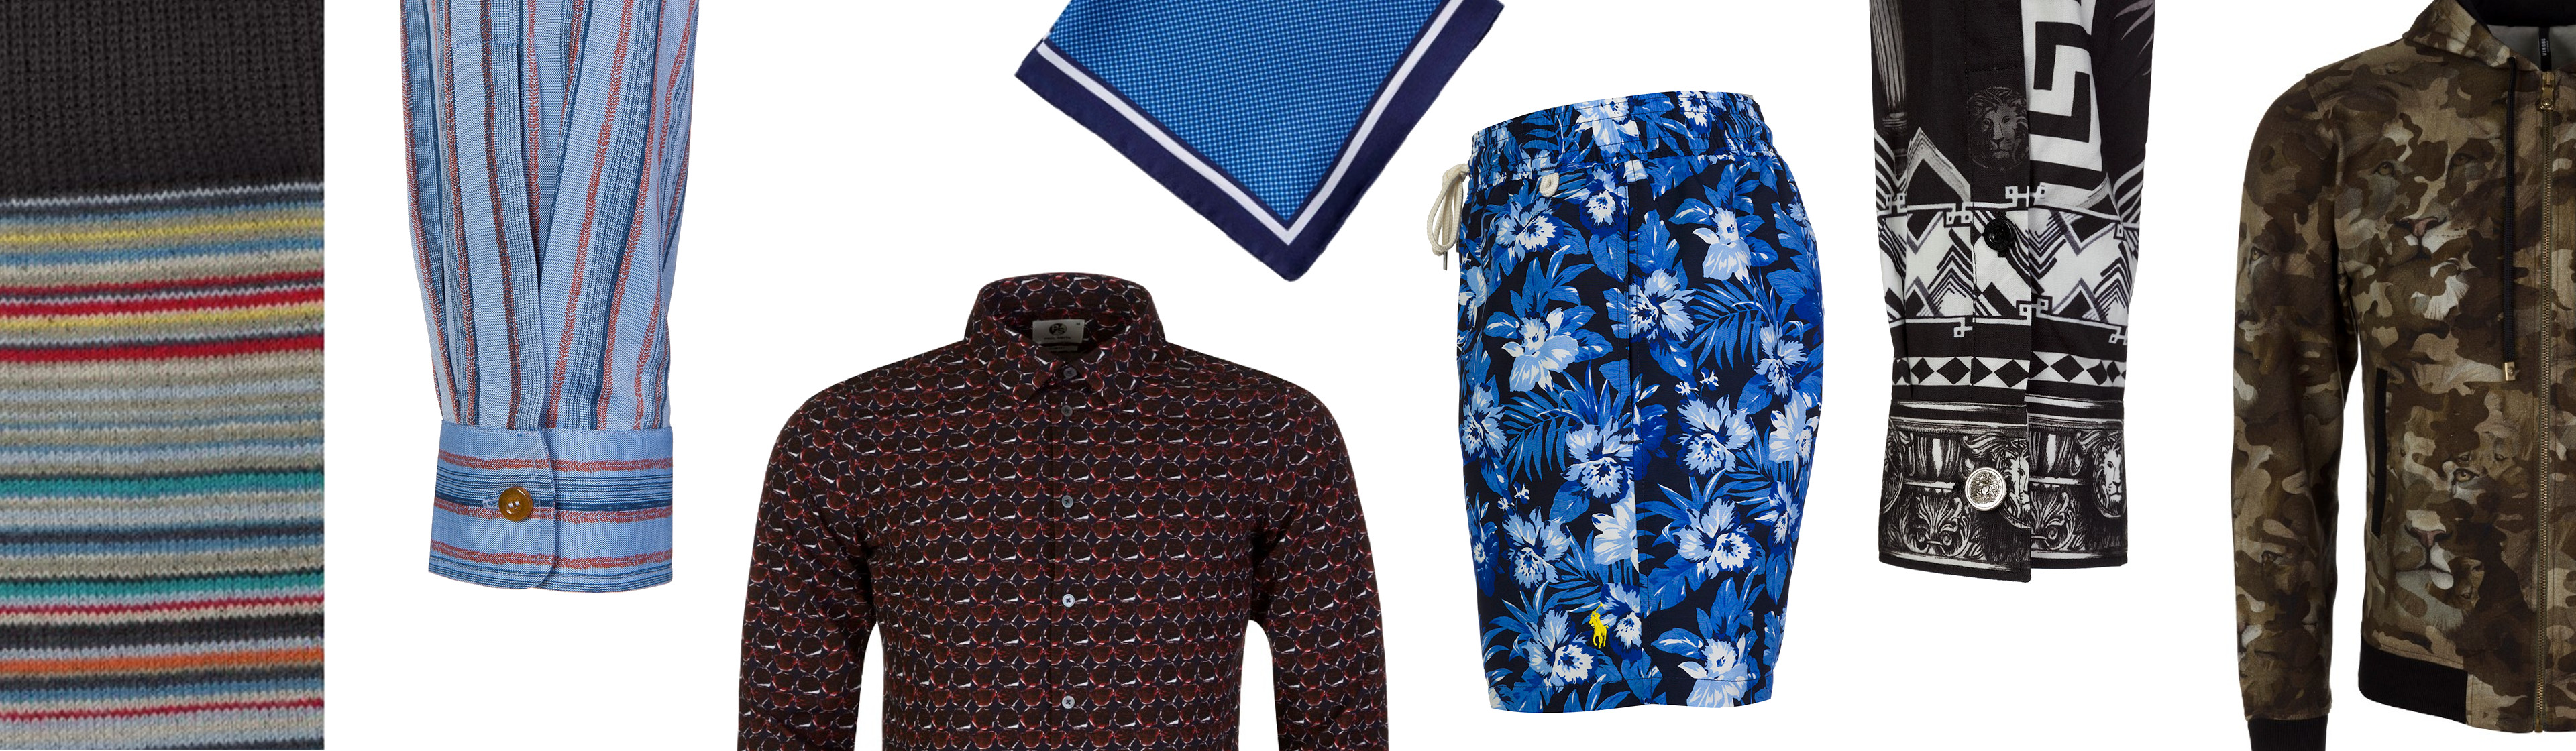 Style Guide: A Man's Guide to Wearing Prints